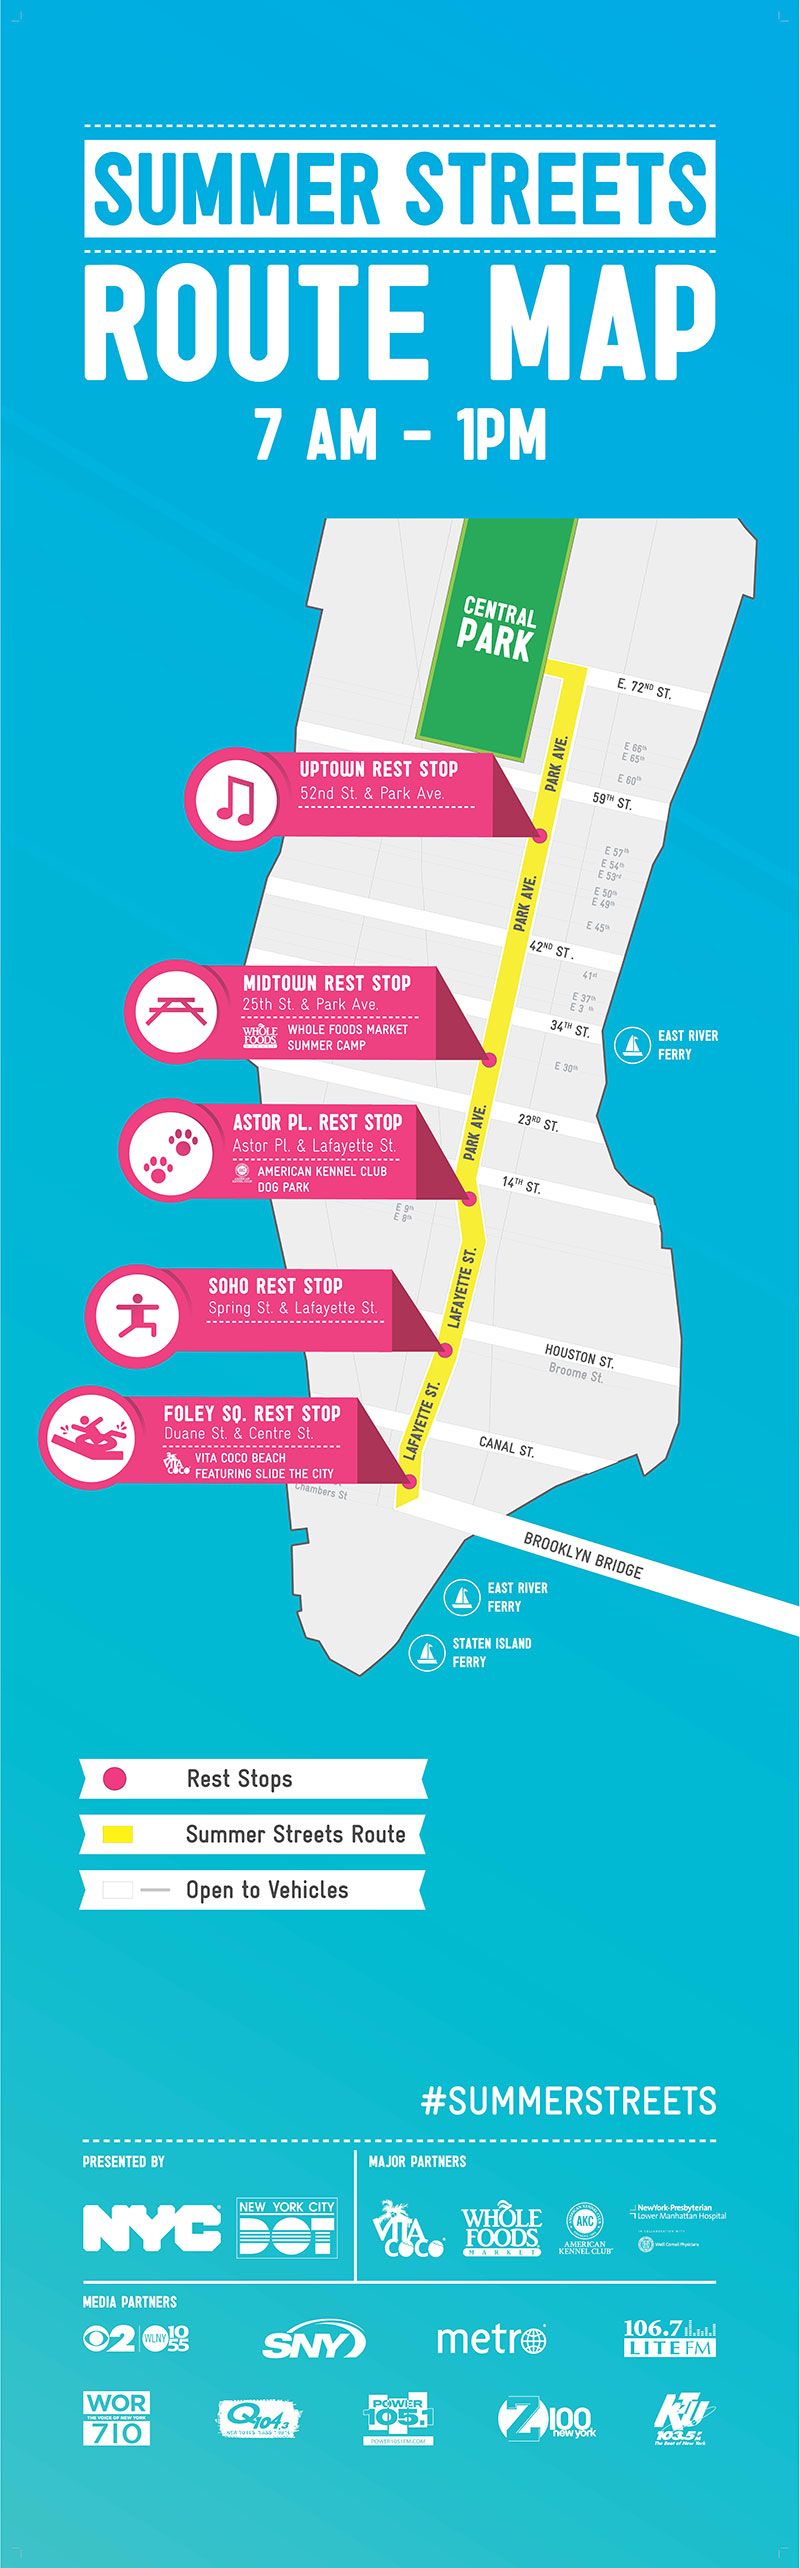 summerstreets map